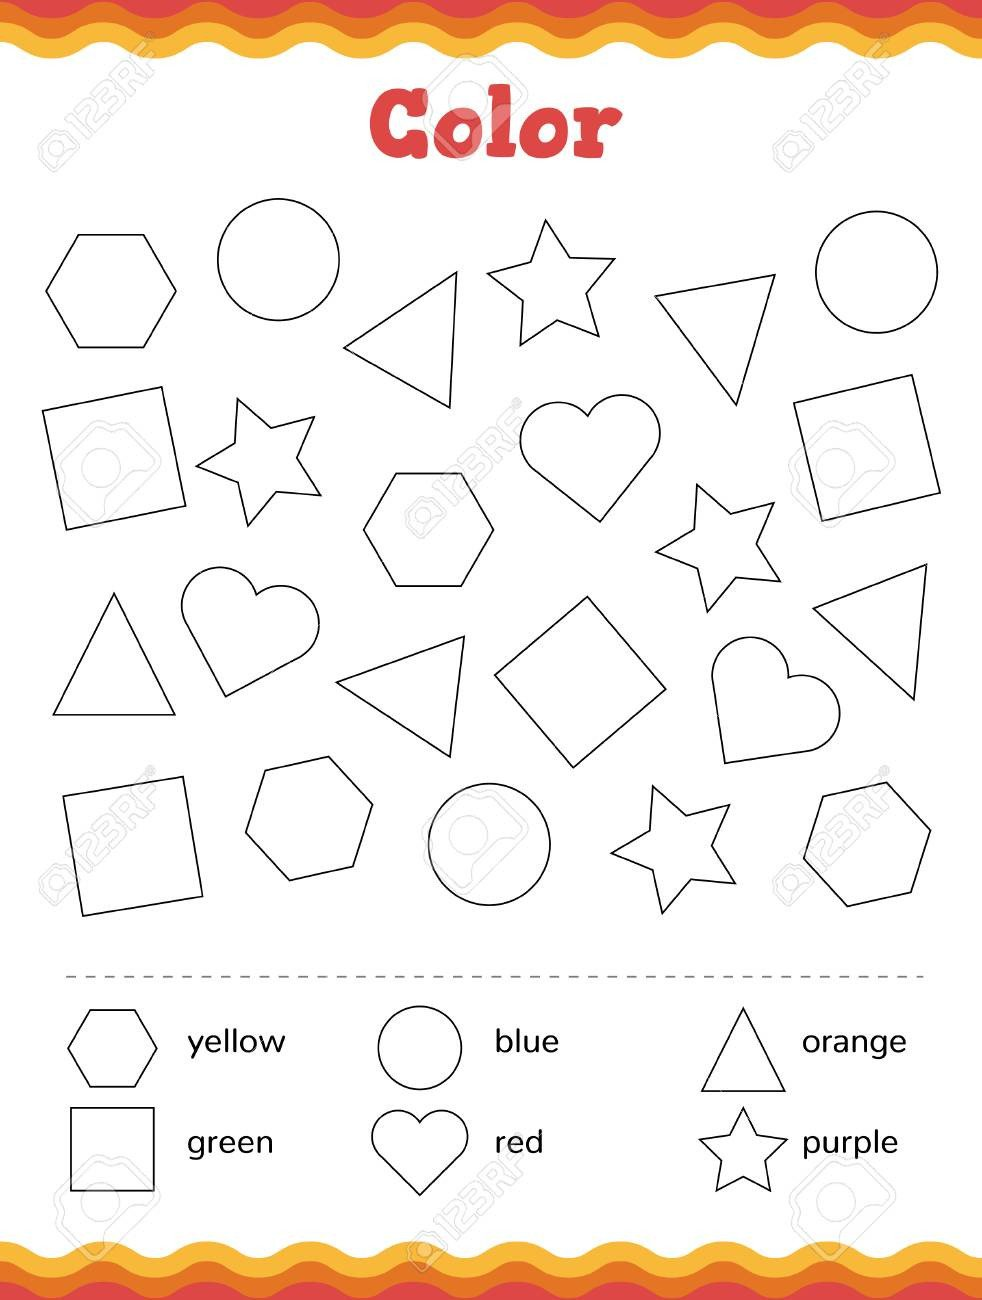 Shapes for Kindergarten Worksheets Worksheet Kindergartent Image Inspirations Learn Shapes